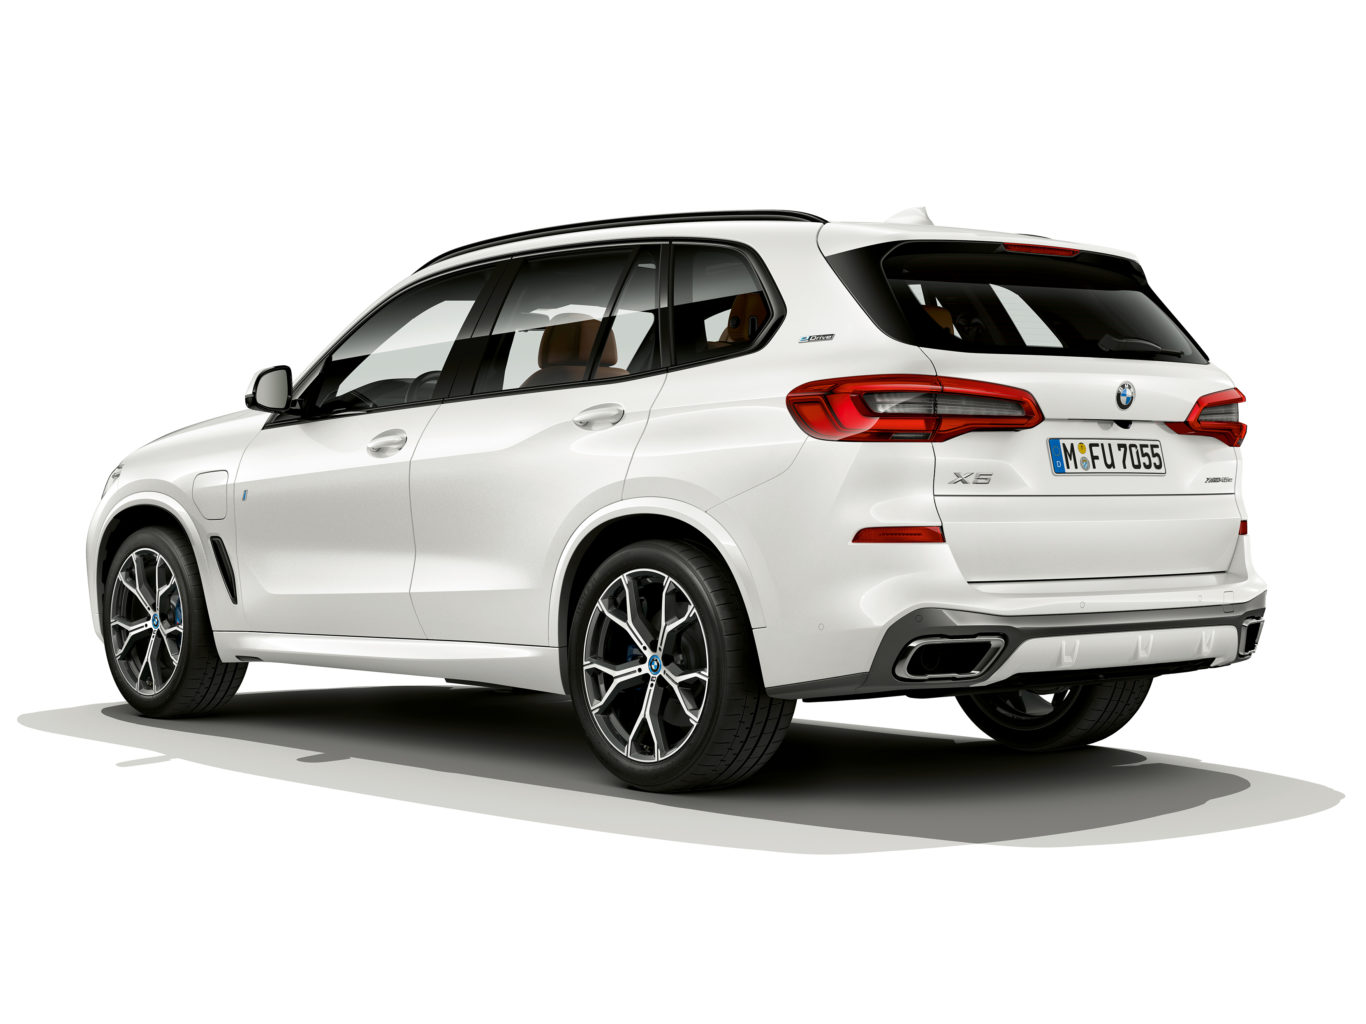 The plug-in X5 retains the same looks as the standard car